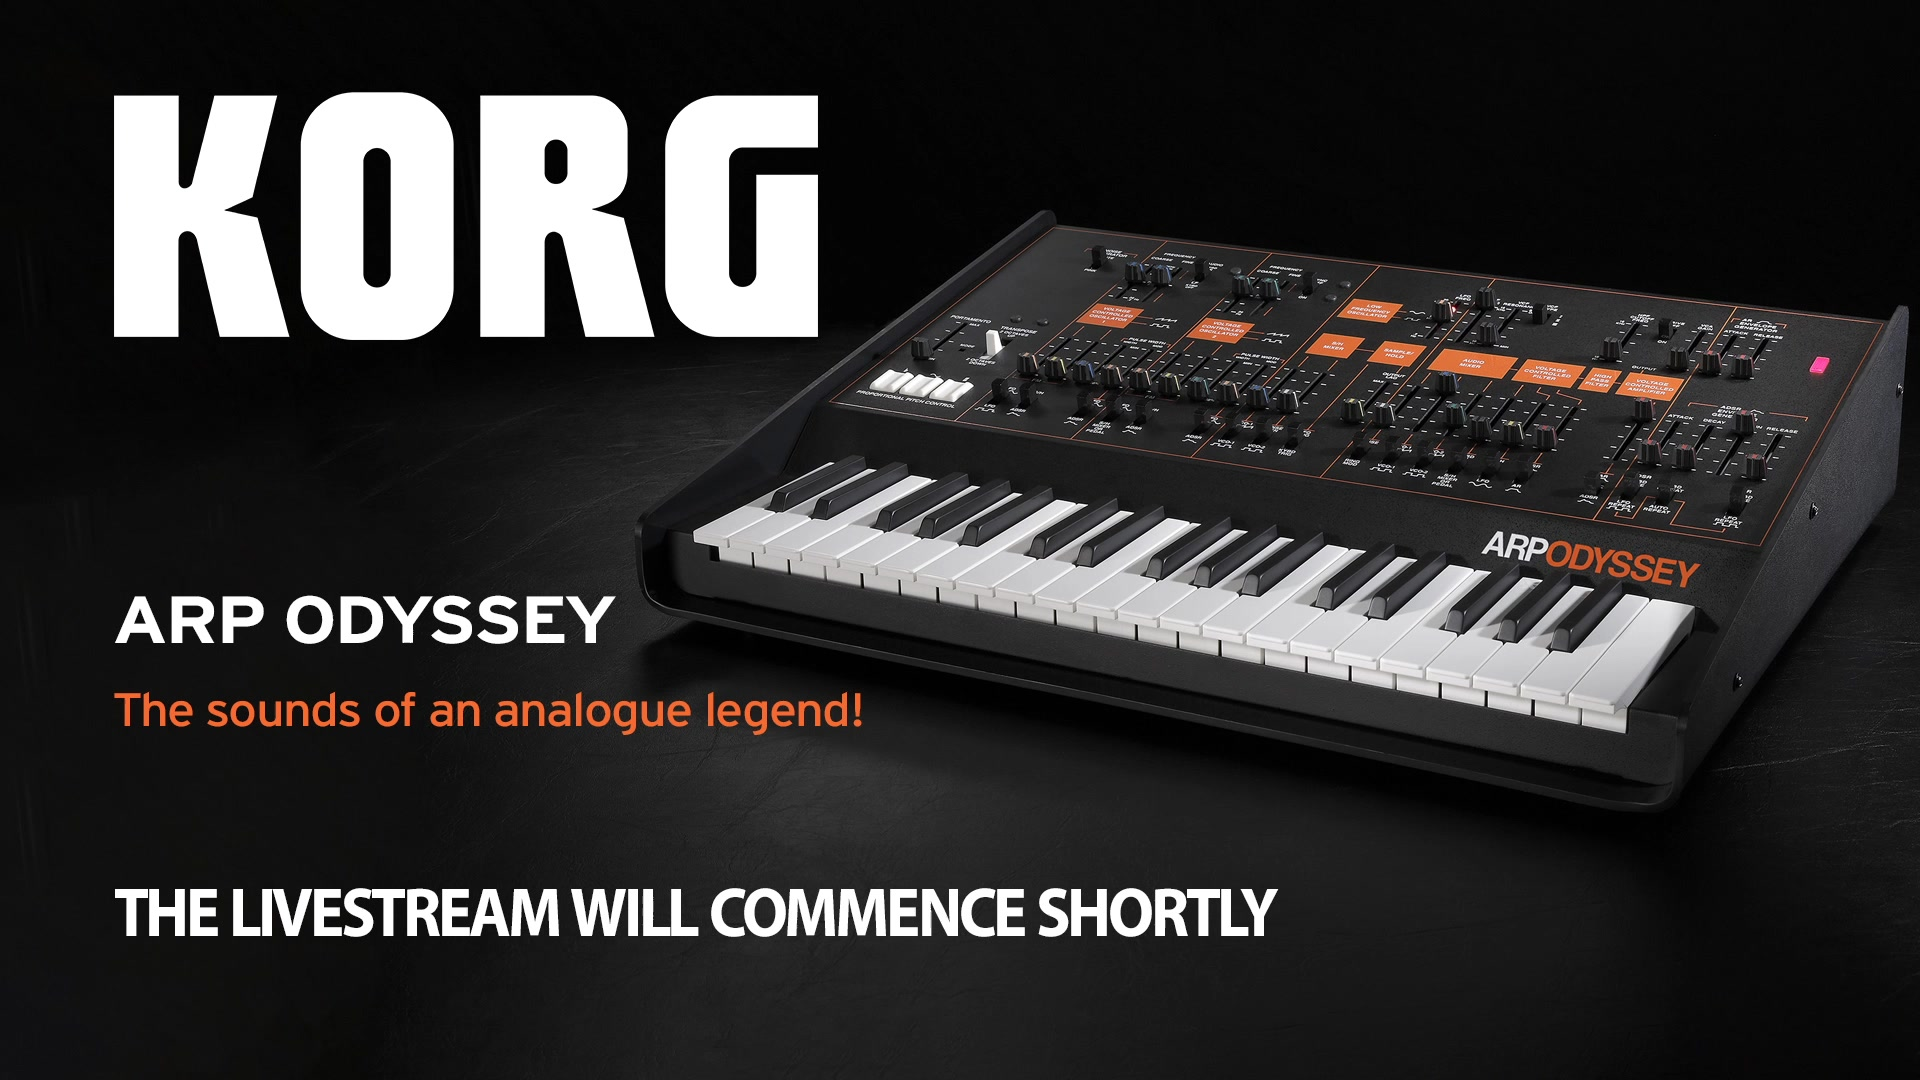 This time we're looking at KORG's faithful reincarnation of a classic analogue synthesizer, the ARP ODYSSEY.